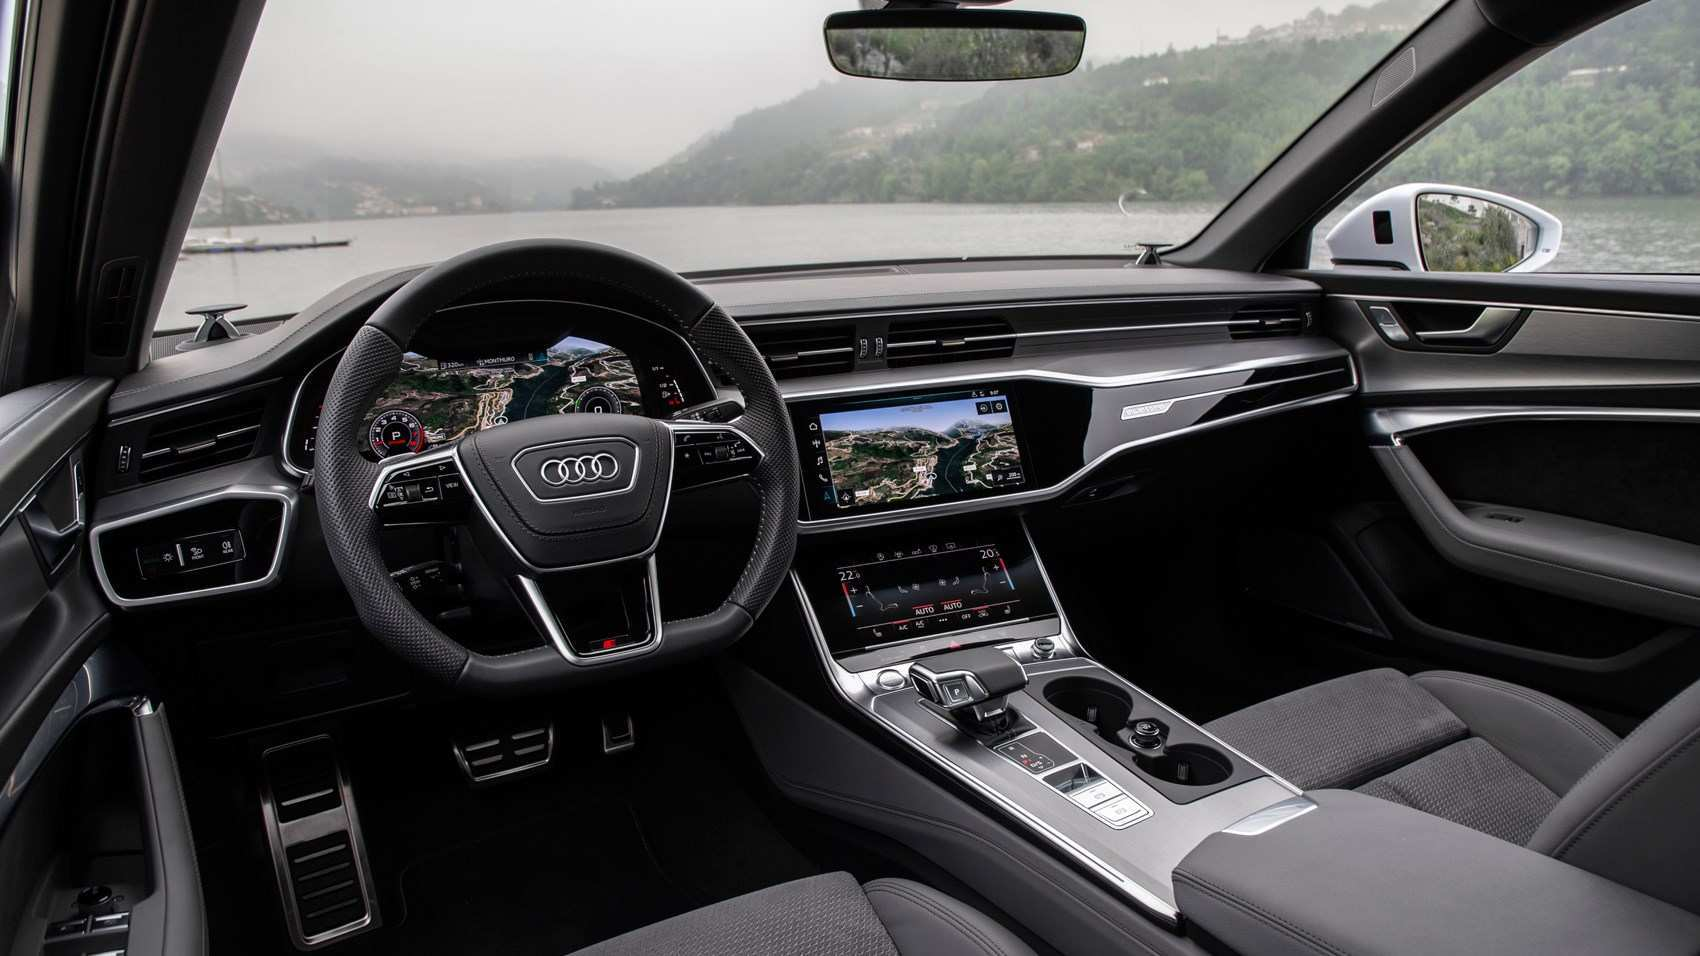 53 All New Review Audi 2019 A6 New Interior Reviews by Review Audi 2019 A6 New Interior